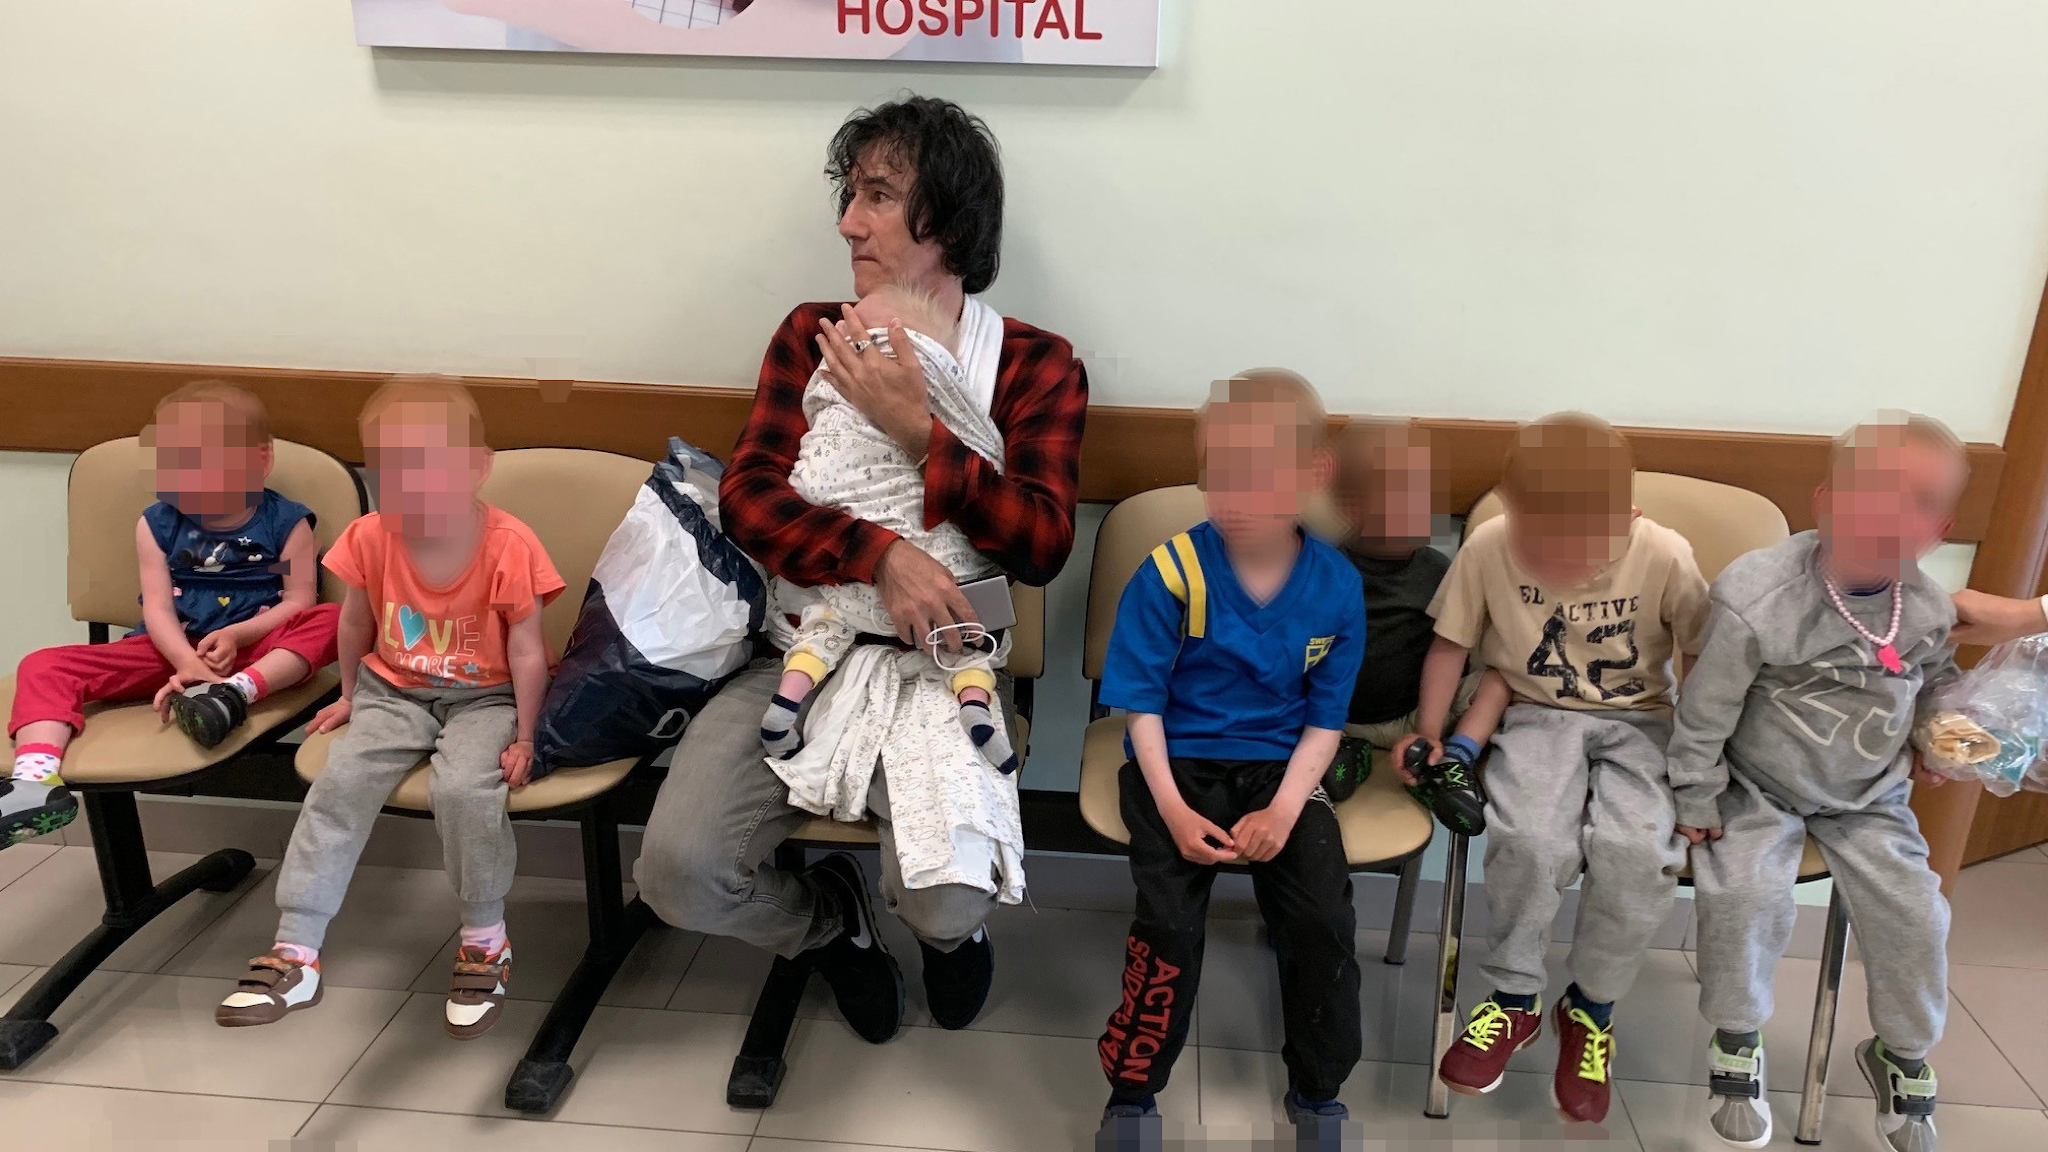 A man with a baby in his arms and six other children sitting next to him, in a hospital waiting room.